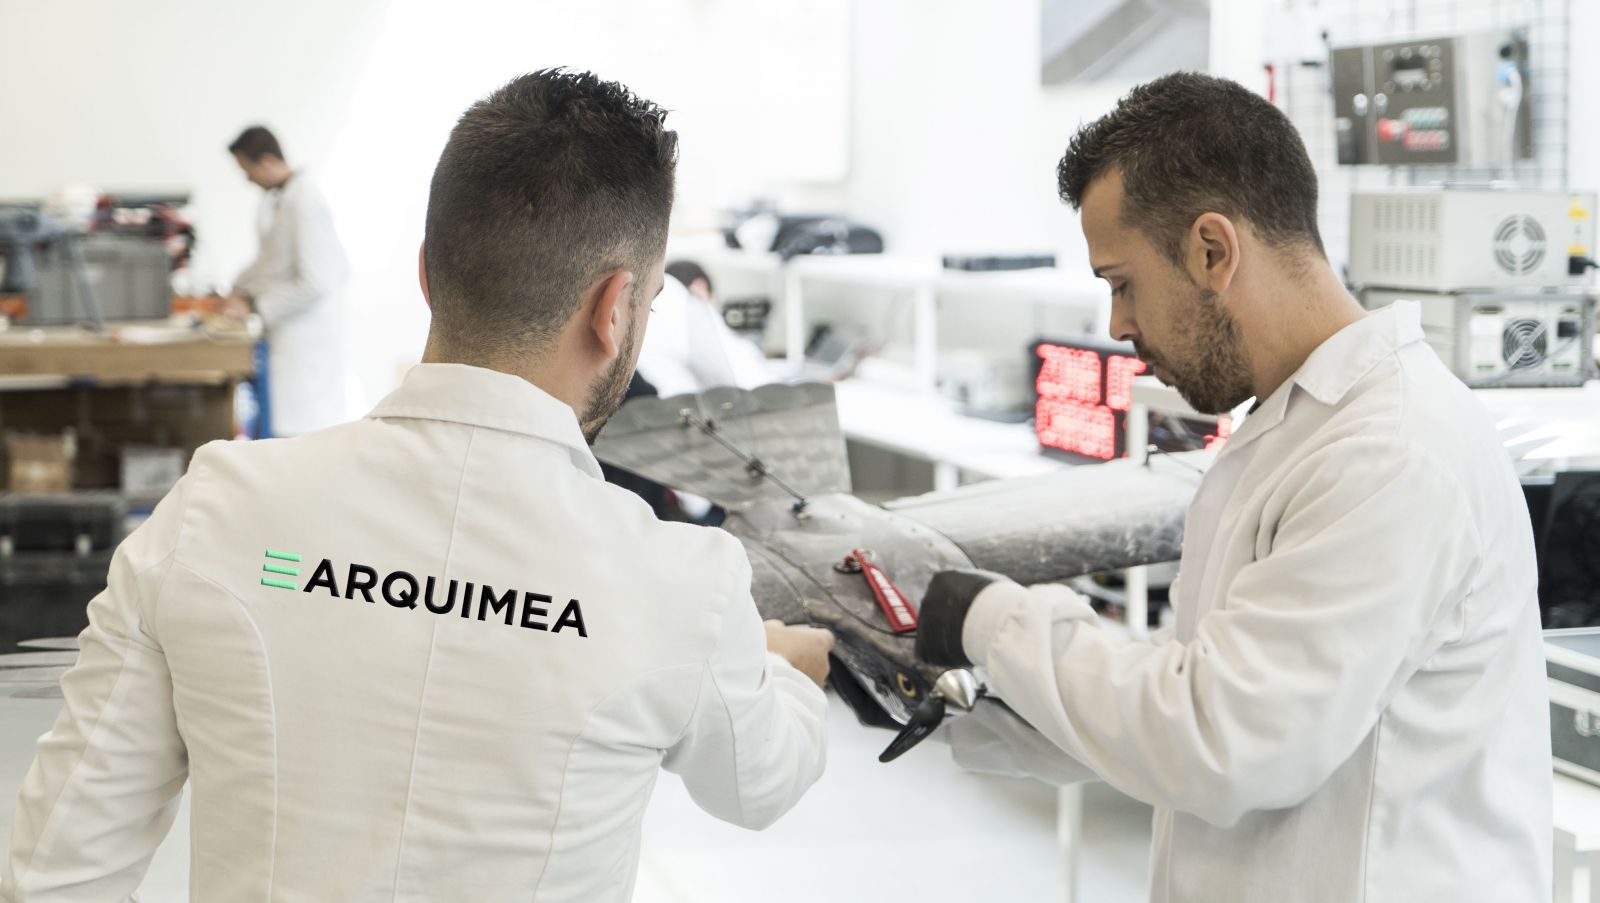 Spanish tech company Arquimea brings its own defense and space business